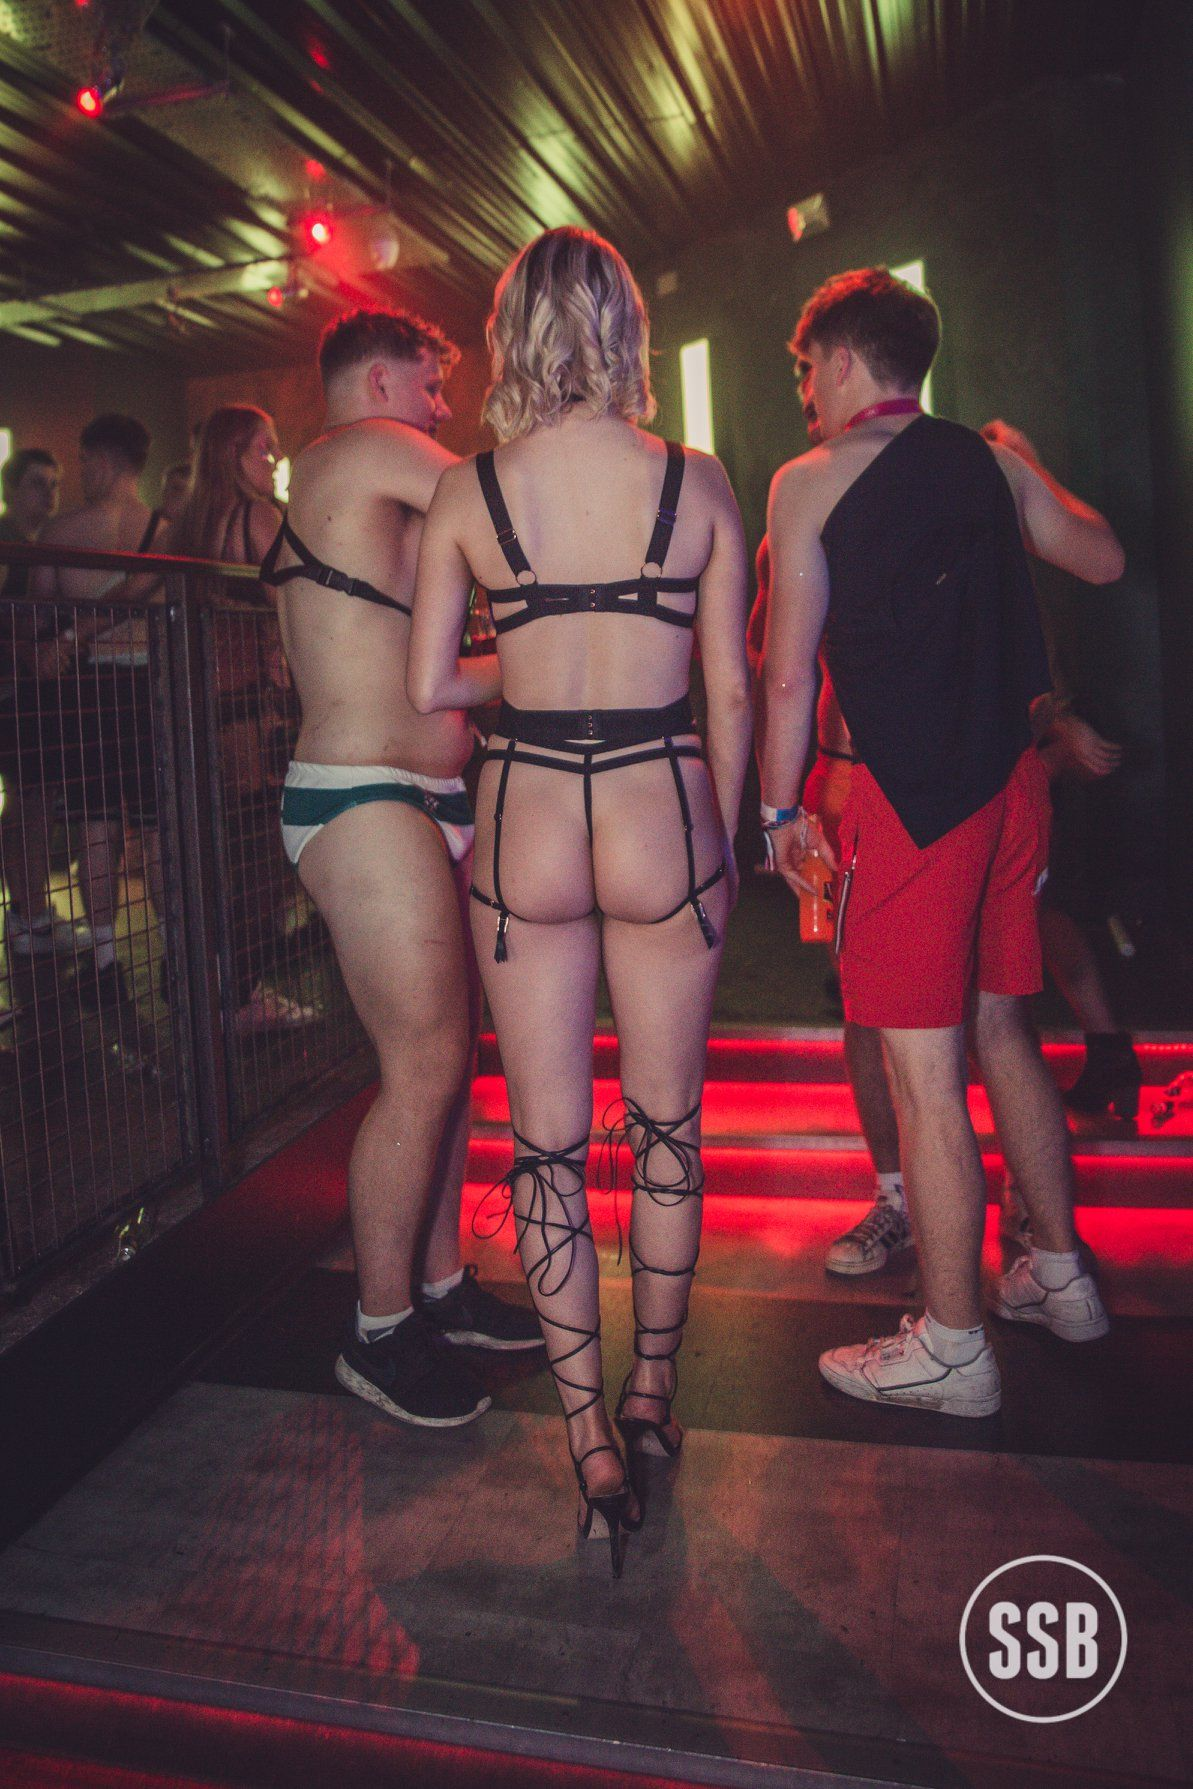 exeter, safer sex ball, lingerie, best dressed, boxers, pole, sex, club, party, exeter students, underwear, bra, pants